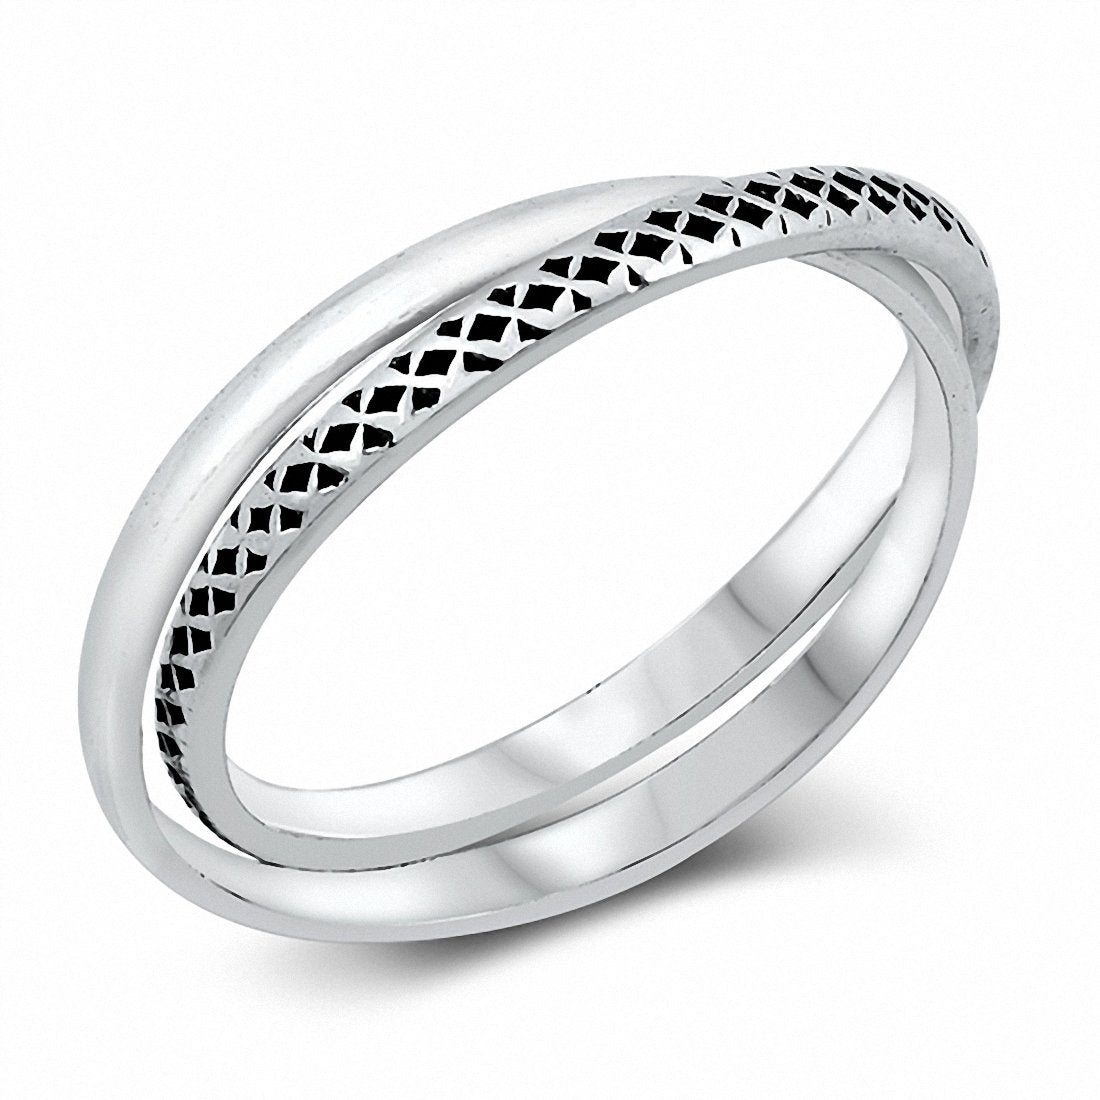 Interlocking Band Ring 2 Bands Solid 925 Sterling Silver Choose Color